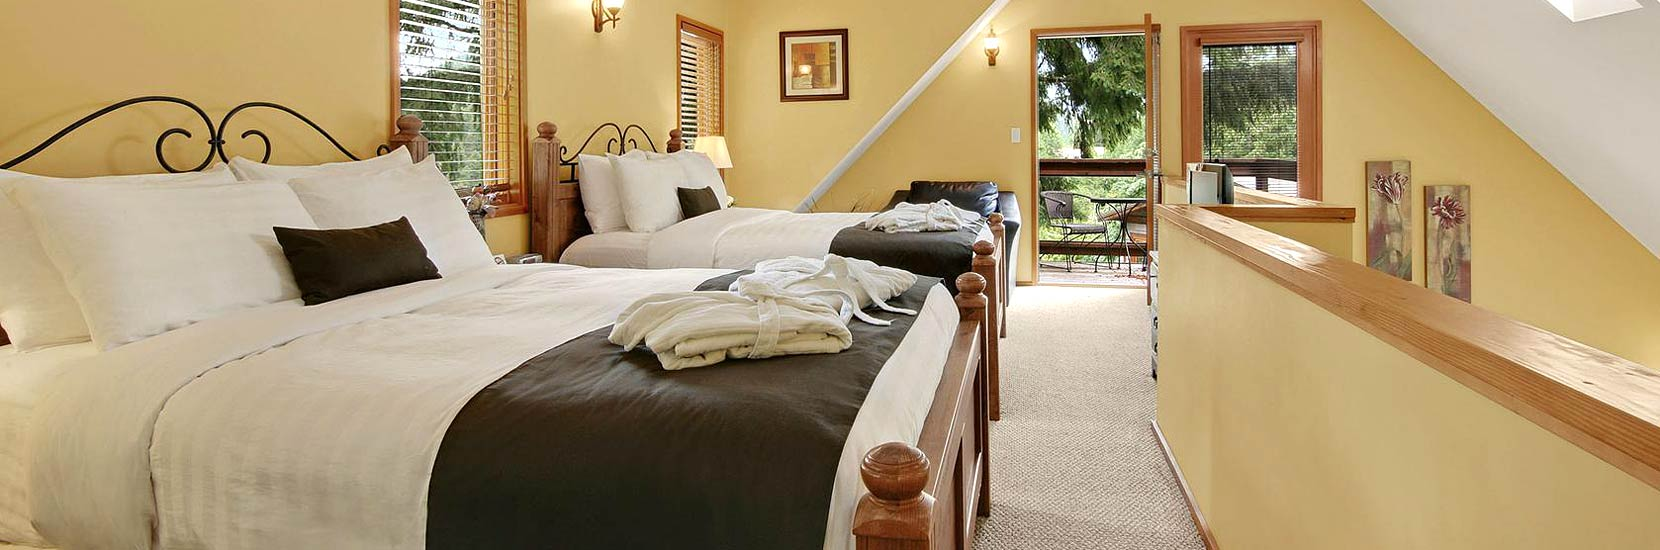 The Executive Cottage upstairs bedroom features 2 queen beds, private bath, LCD TV and balcony